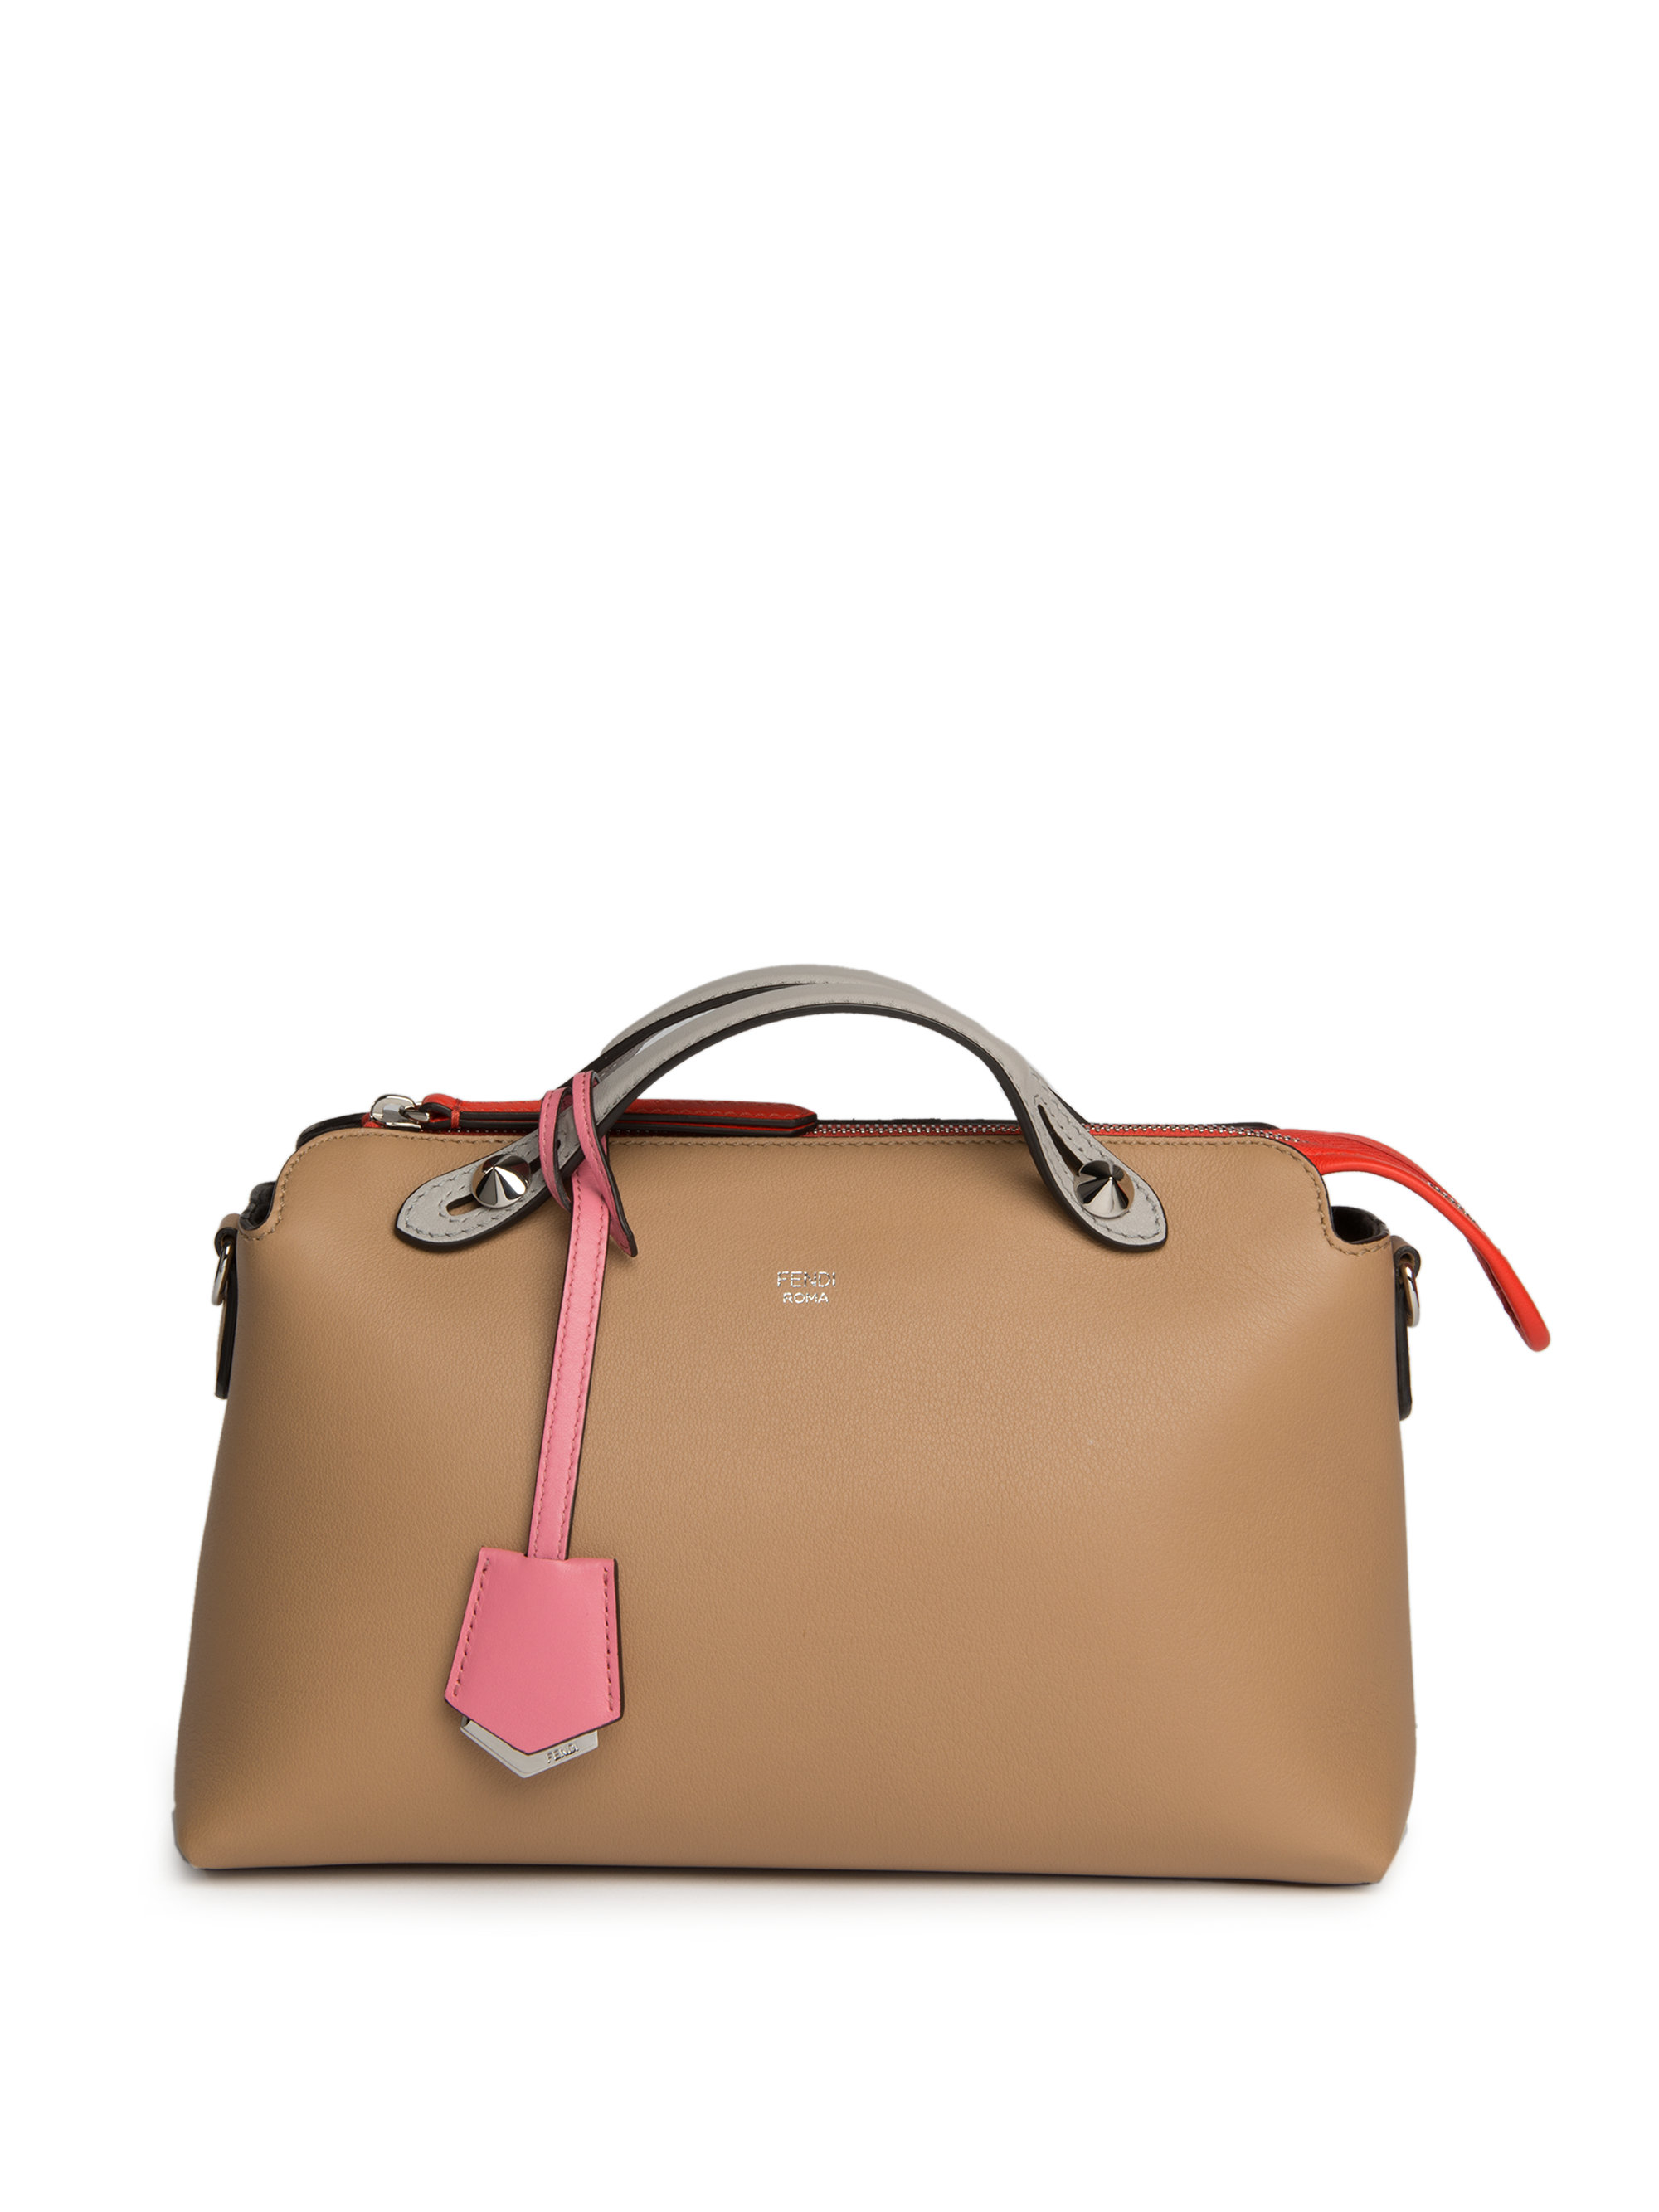 828c98ae3875 Lyst - Fendi By The Way Small Colorblock Leather Satchel in Natural